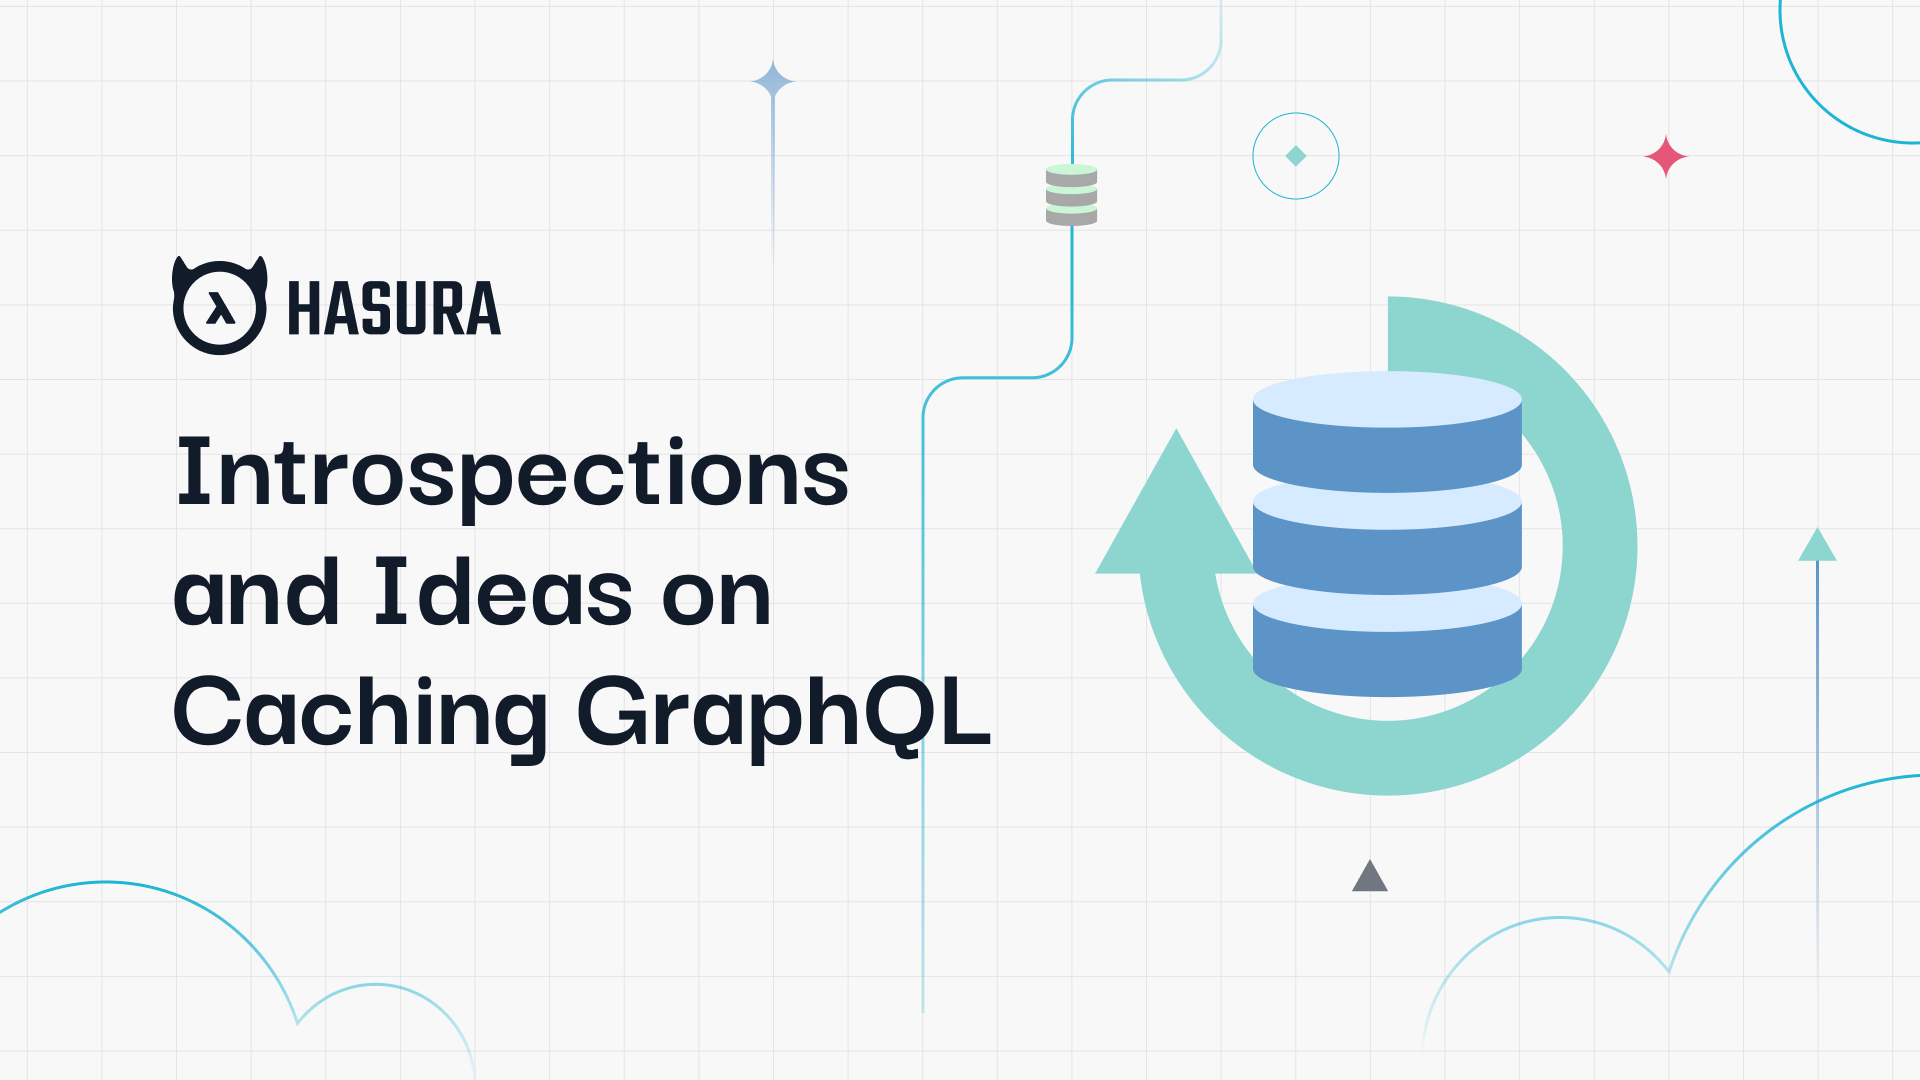 Introspections and Ideas on Caching GraphQL